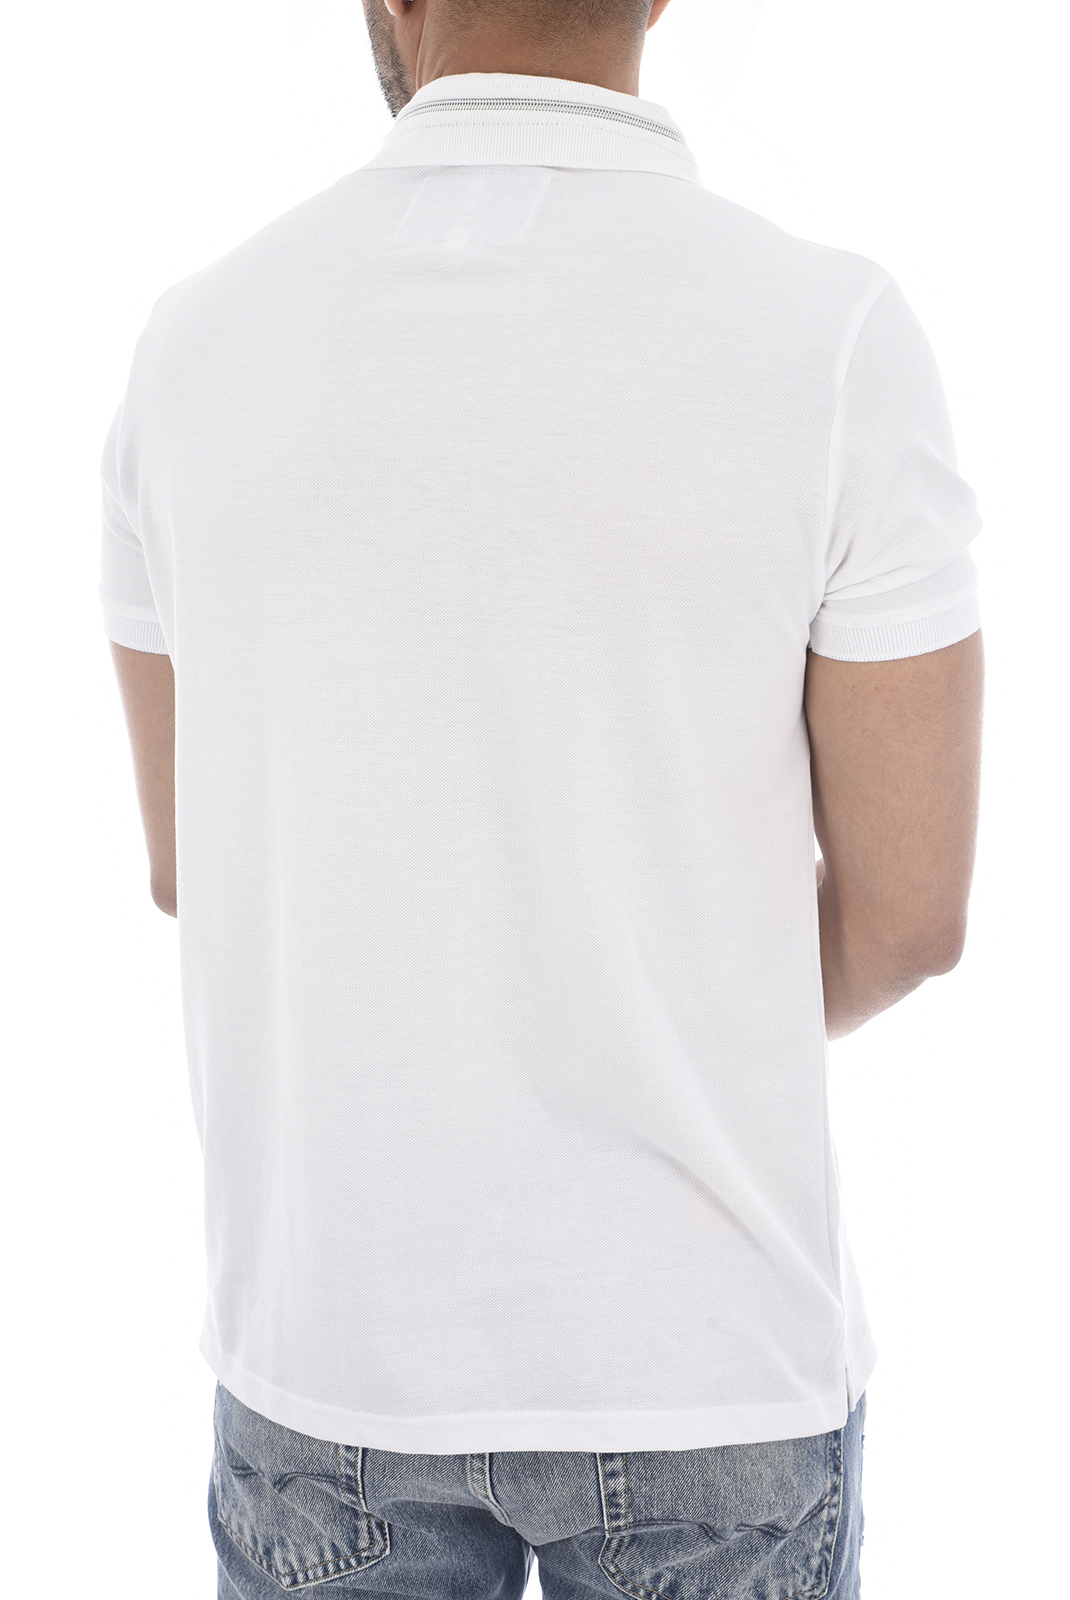 Tee-shirts  Hite couture PRISIER BLANC